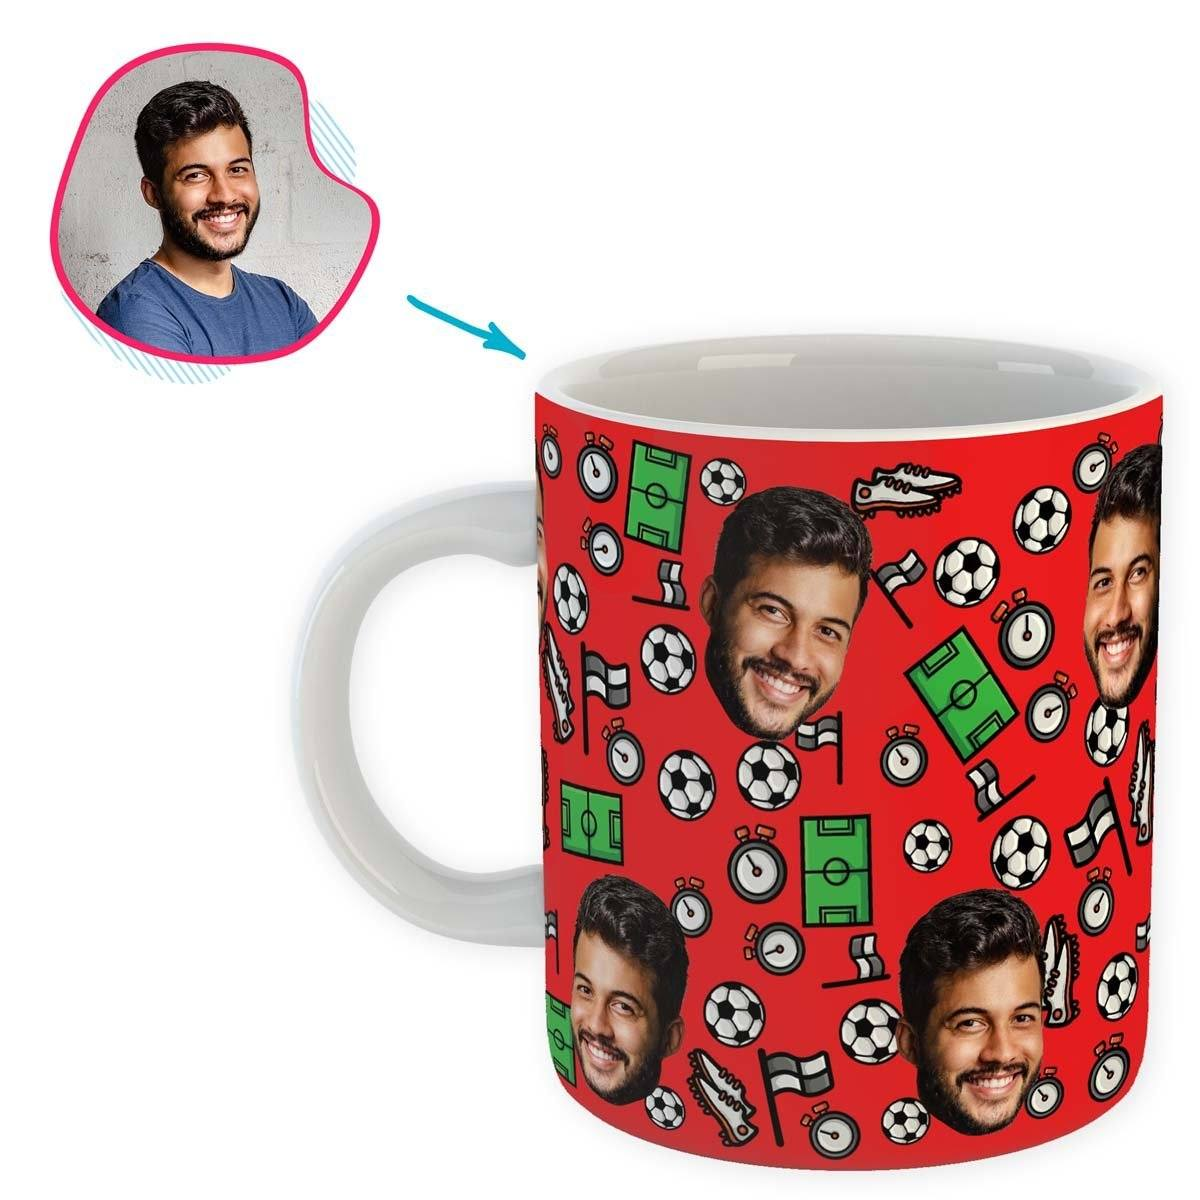 red Football mug personalized with photo of face printed on it